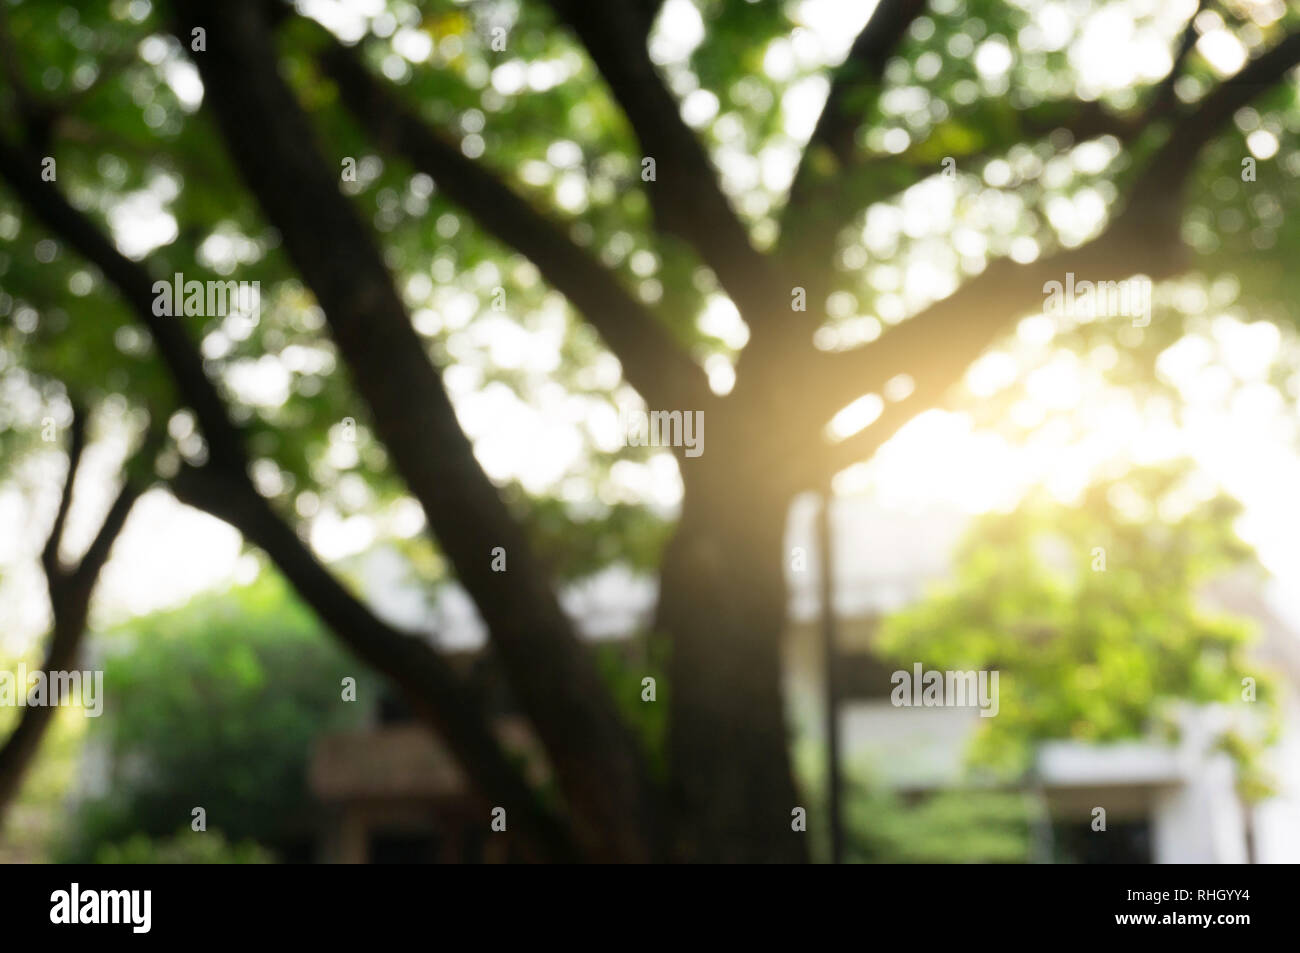 Blurred beautiful nature background blurry of leaf bokeh forest. for background usage . - Stock Image